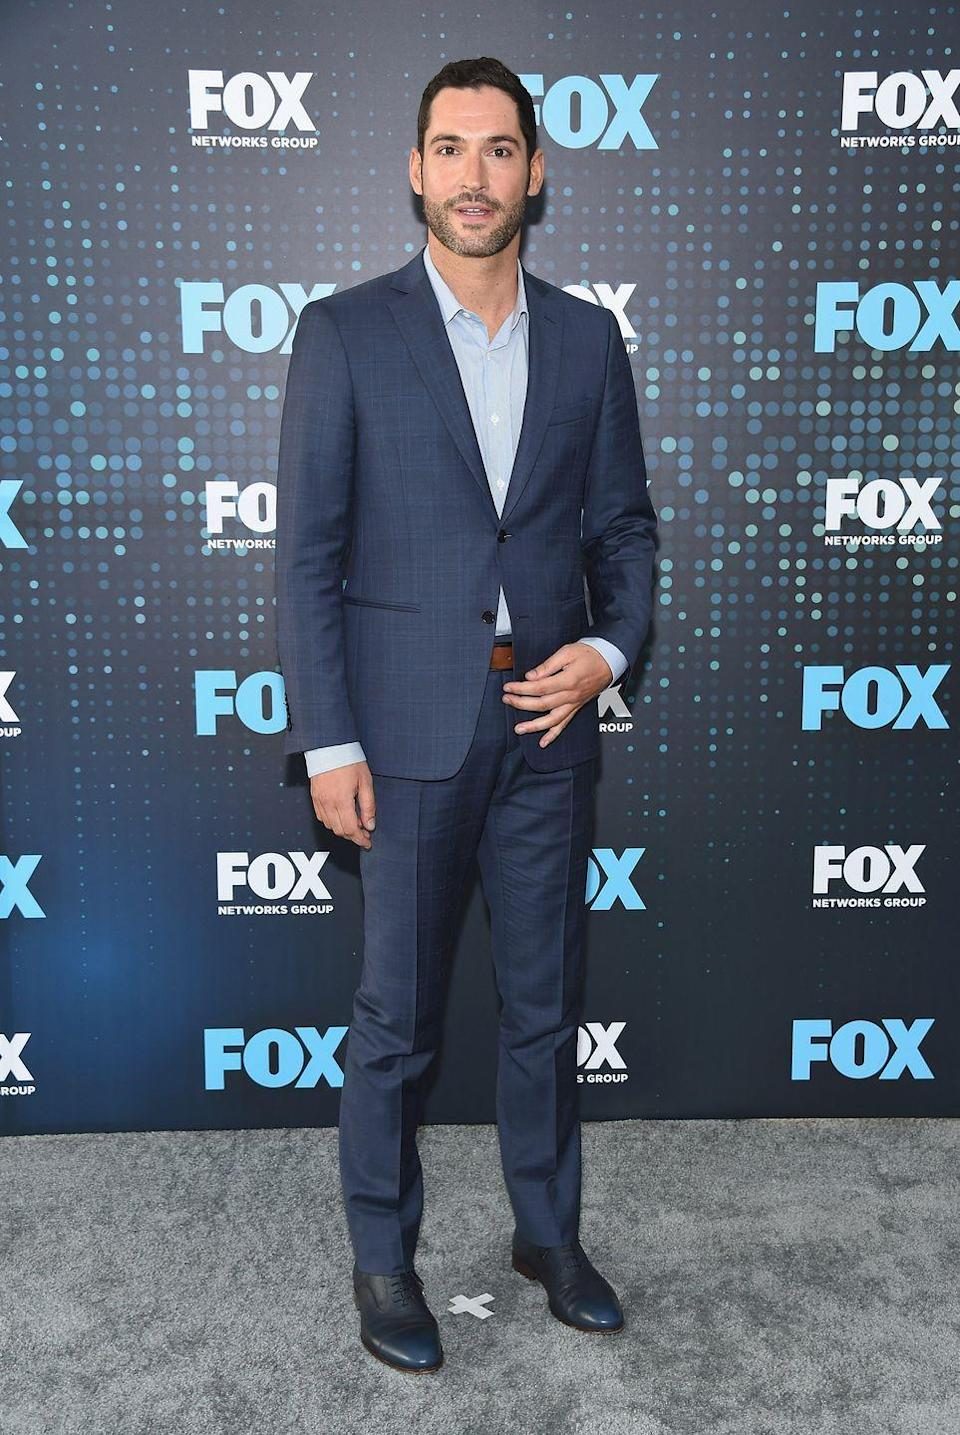 """<p>After his show <em>Lucifer</em> was renewed for season 4, Ellis felt he needed to step up his workout regimen and gain some muscle mass. """"We were going to train six days a week,"""" he told <em><a href=""""https://www.menshealth.com/fitness/a28435487/tom-ellis-lucifer-workout/"""" rel=""""nofollow noopener"""" target=""""_blank"""" data-ylk=""""slk:Men's Health"""" class=""""link rapid-noclick-resp"""">Men's Health</a></em>. """"We would do four days of it as an upper-lower body split using big compound movements to get the big muscles going.""""</p><p><a class=""""link rapid-noclick-resp"""" href=""""https://www.youtube.com/watch?v=F05fvnuF6iw&t=5s"""" rel=""""nofollow noopener"""" target=""""_blank"""" data-ylk=""""slk:Watch here"""">Watch here</a></p>"""